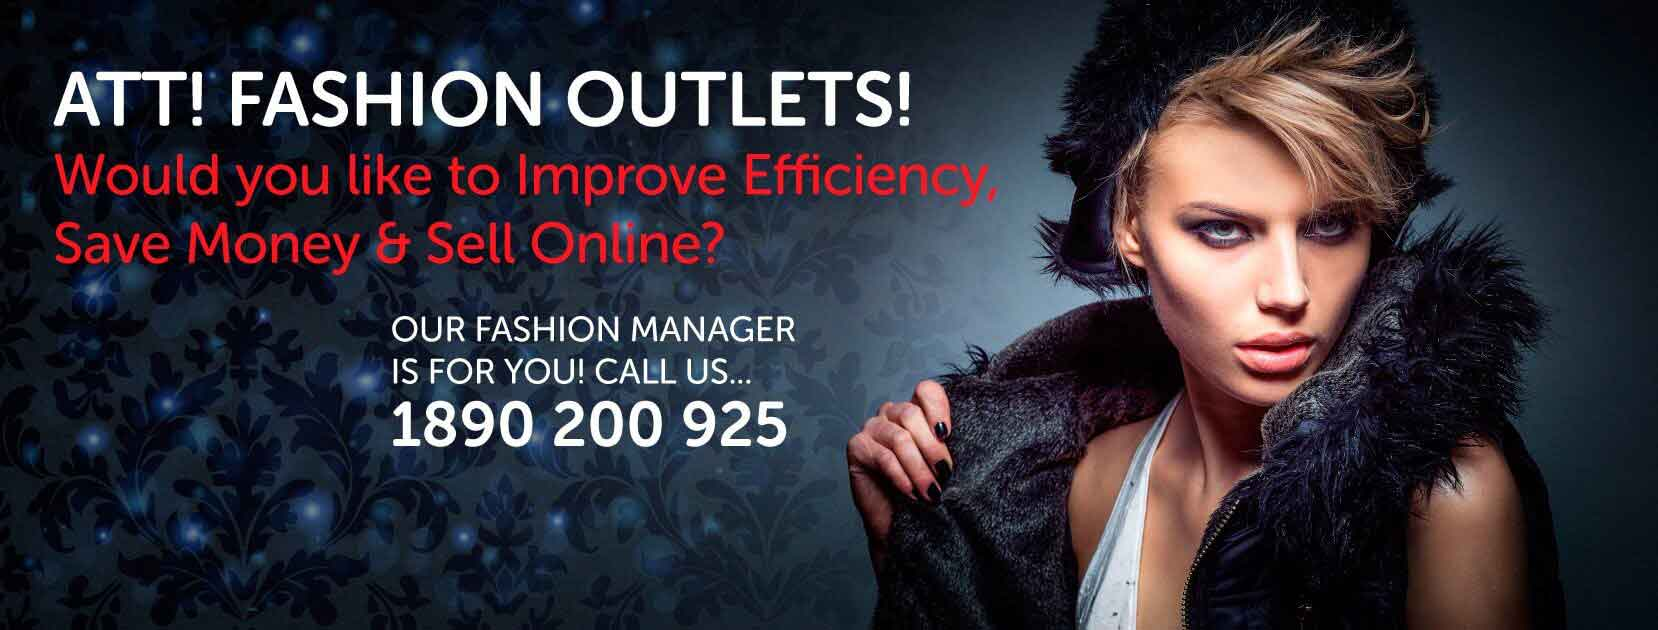 epos systems for fashion